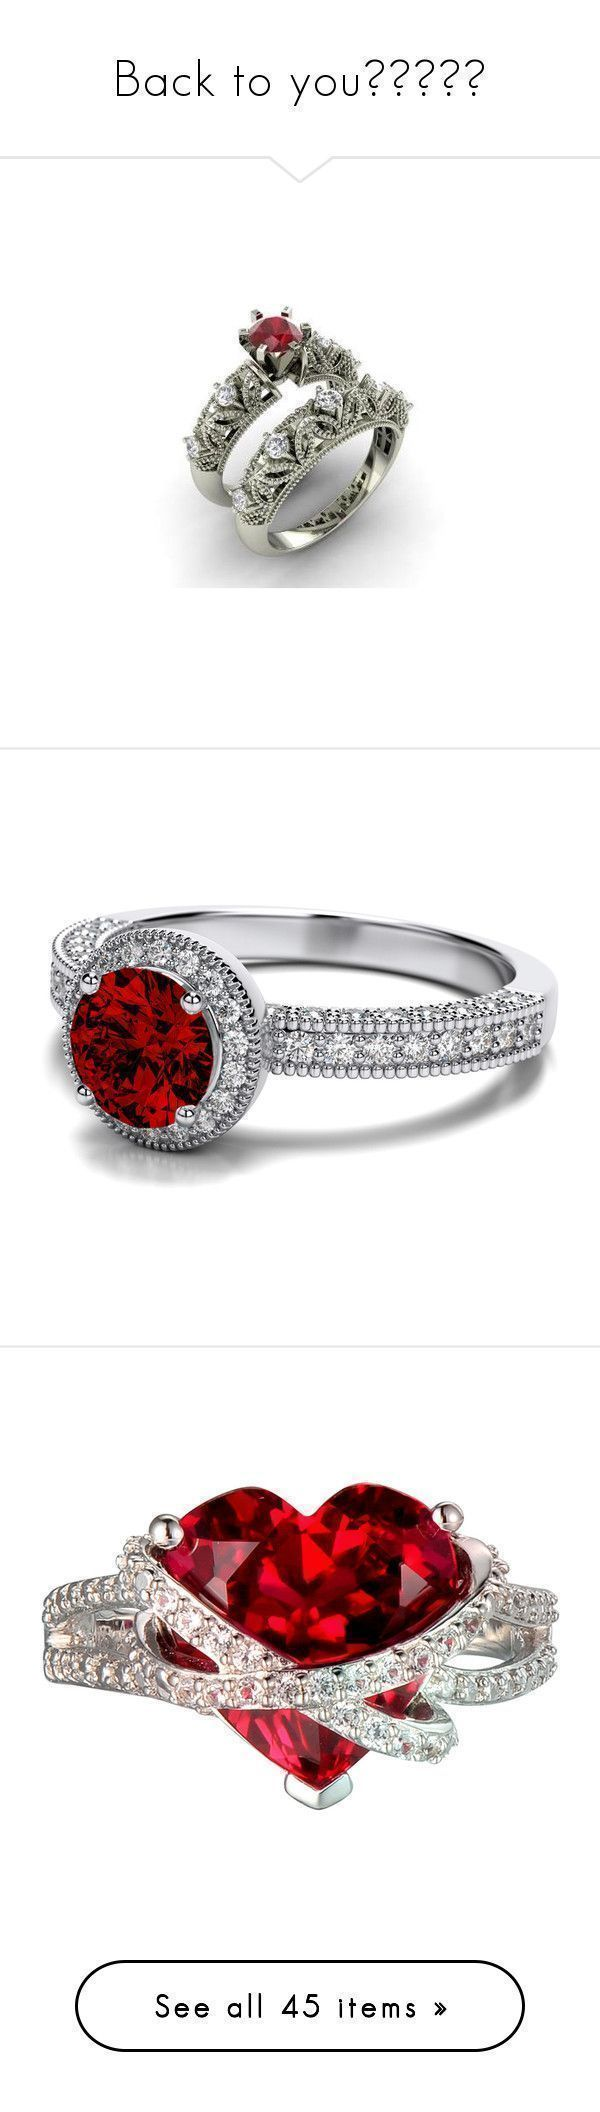 """""""Back to you❤️"""" by skh-siera18 ❤ liked on Polyvore featuring jewelry, rings, anel, diamond rings, 14k diamond ring, diamond band ring, diamond wedding rings, wedding band ring, accessories and red #diamondweddingbands #weddingrings #weddingbands"""